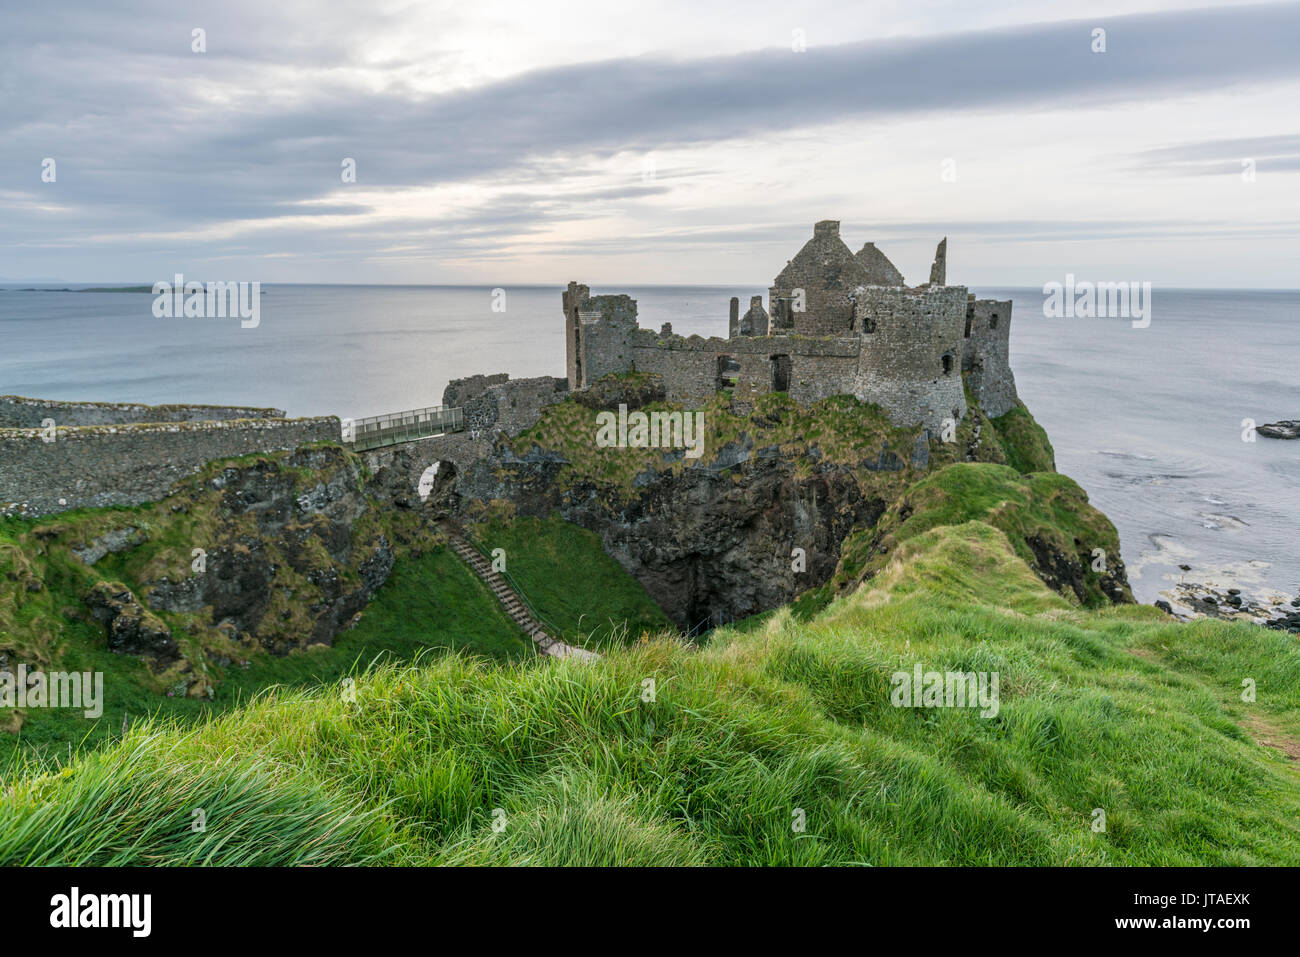 Dunluce Castle ruins, Bushmills, County Antrim, Ulster, Northern Ireland, United Kingdom, Europe - Stock Image